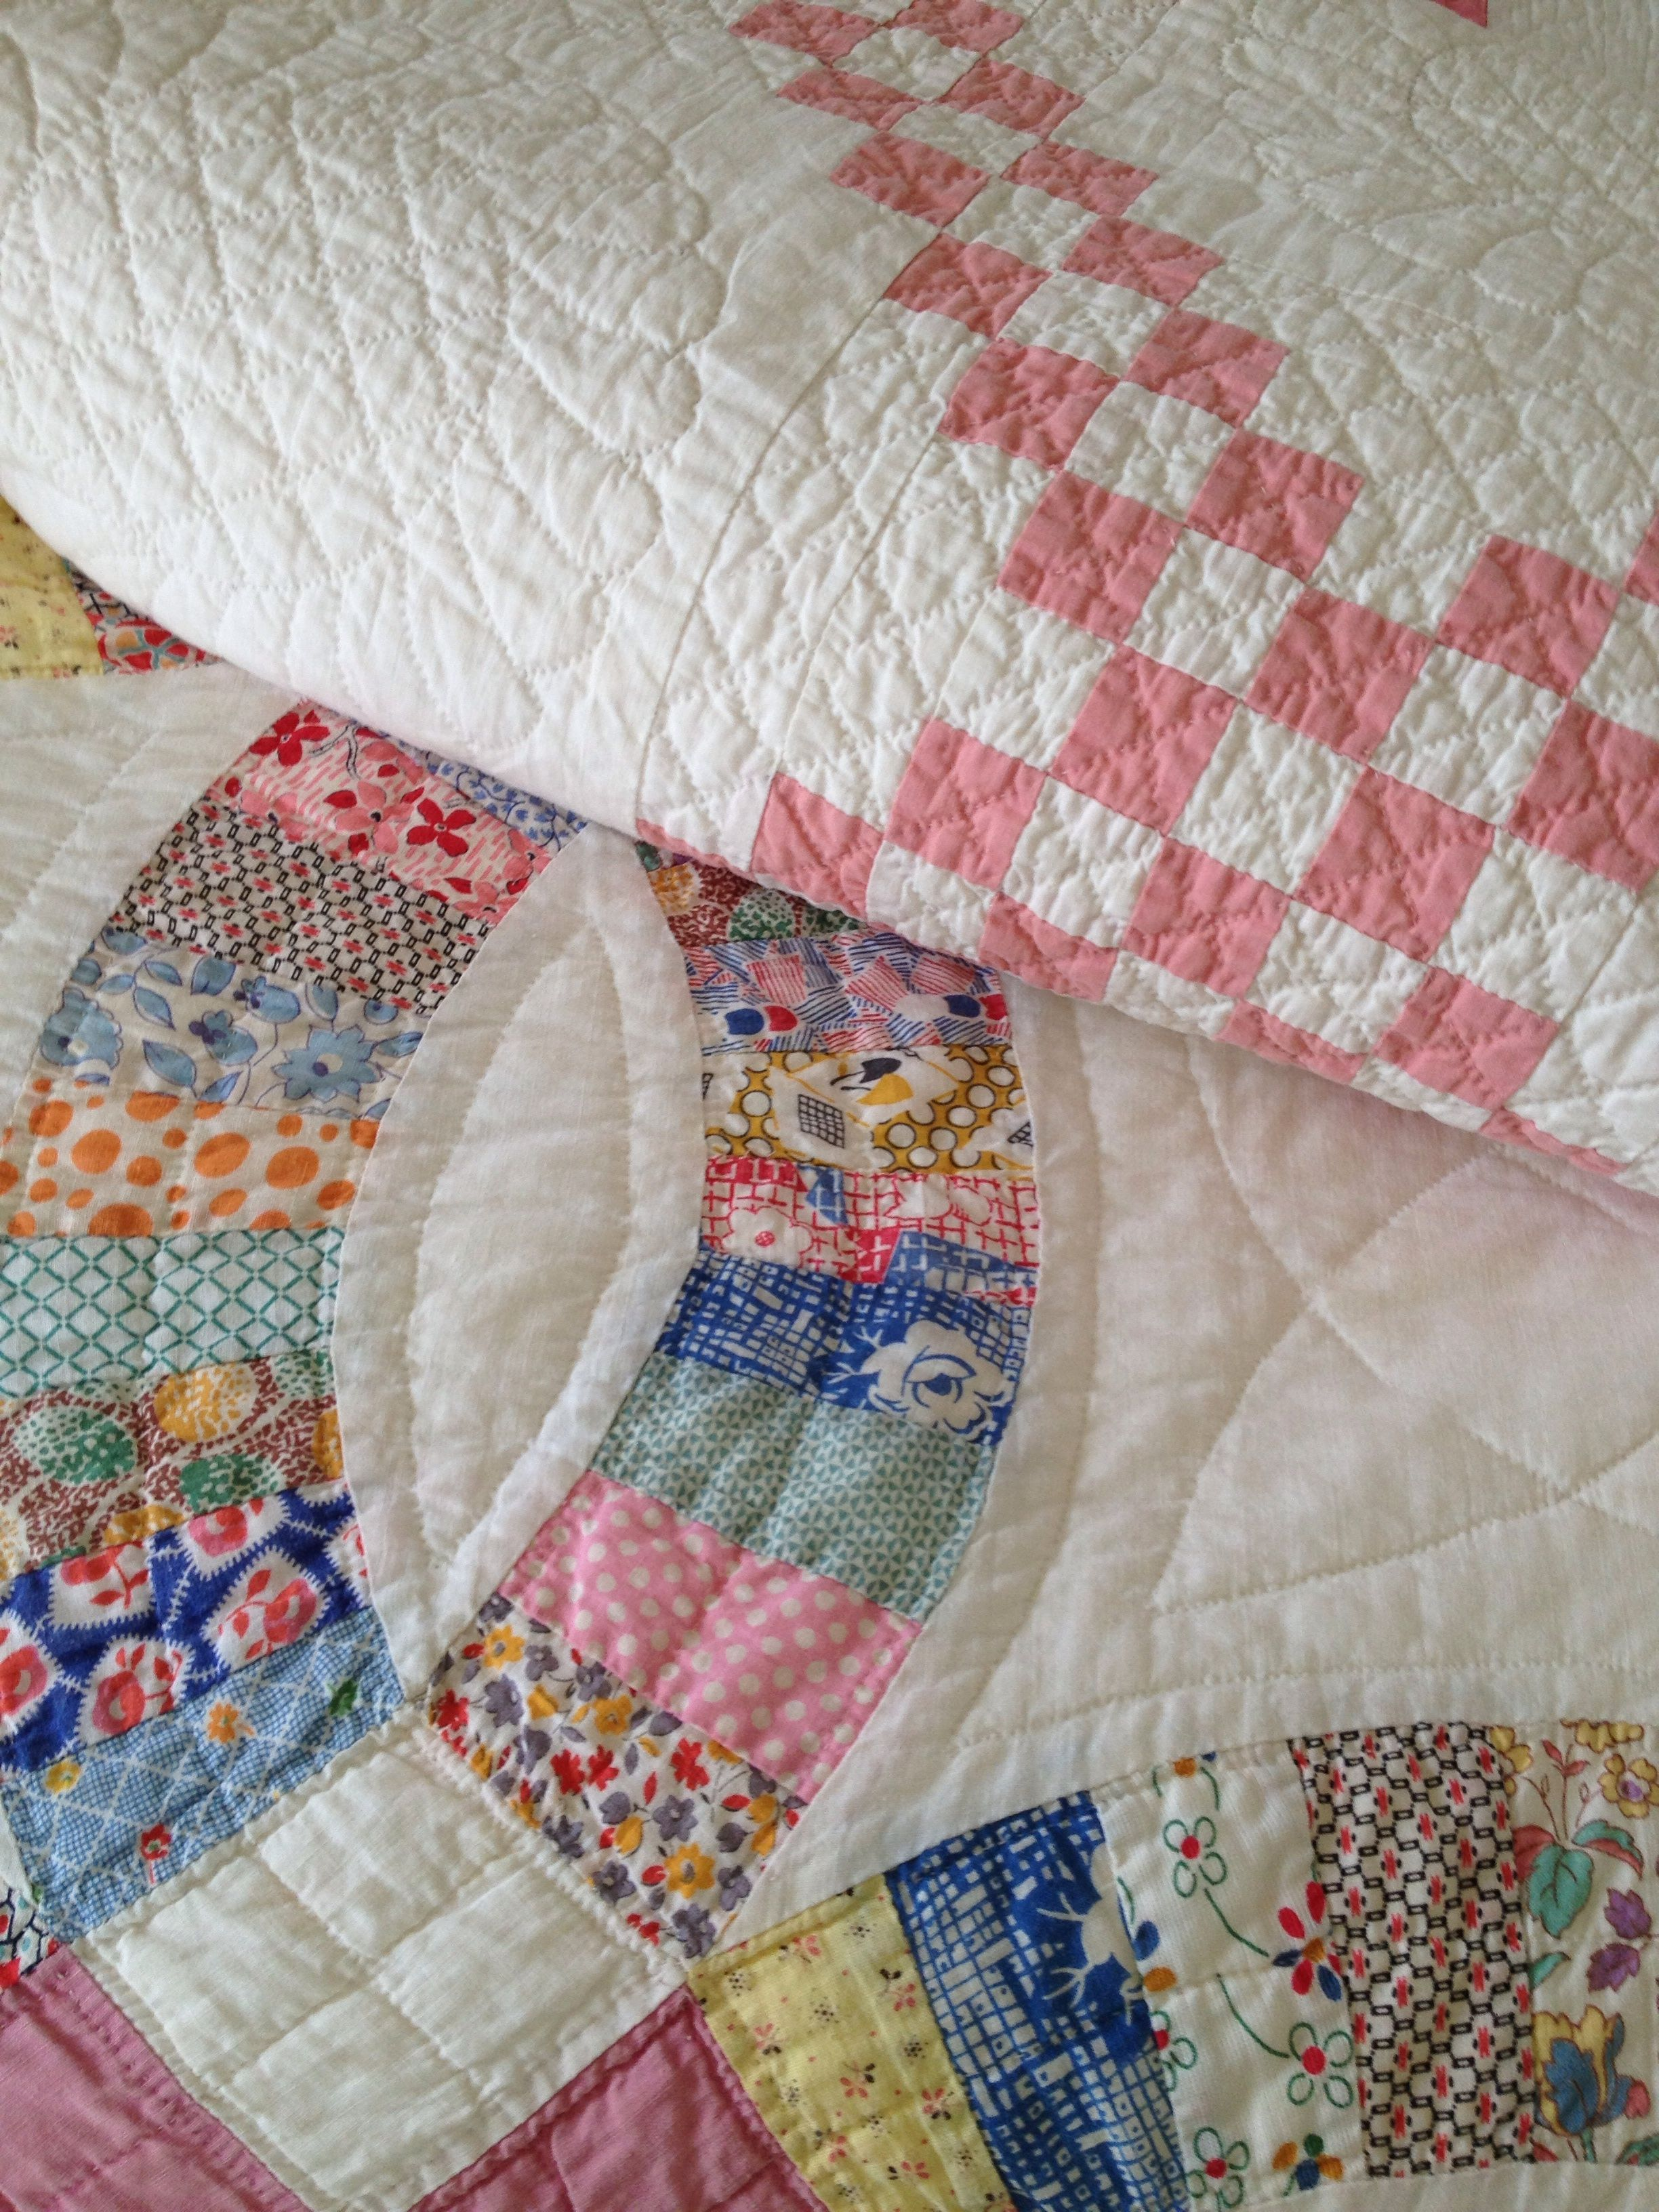 Beautiful Irish chain and wedding ring quilts.1920's/1930